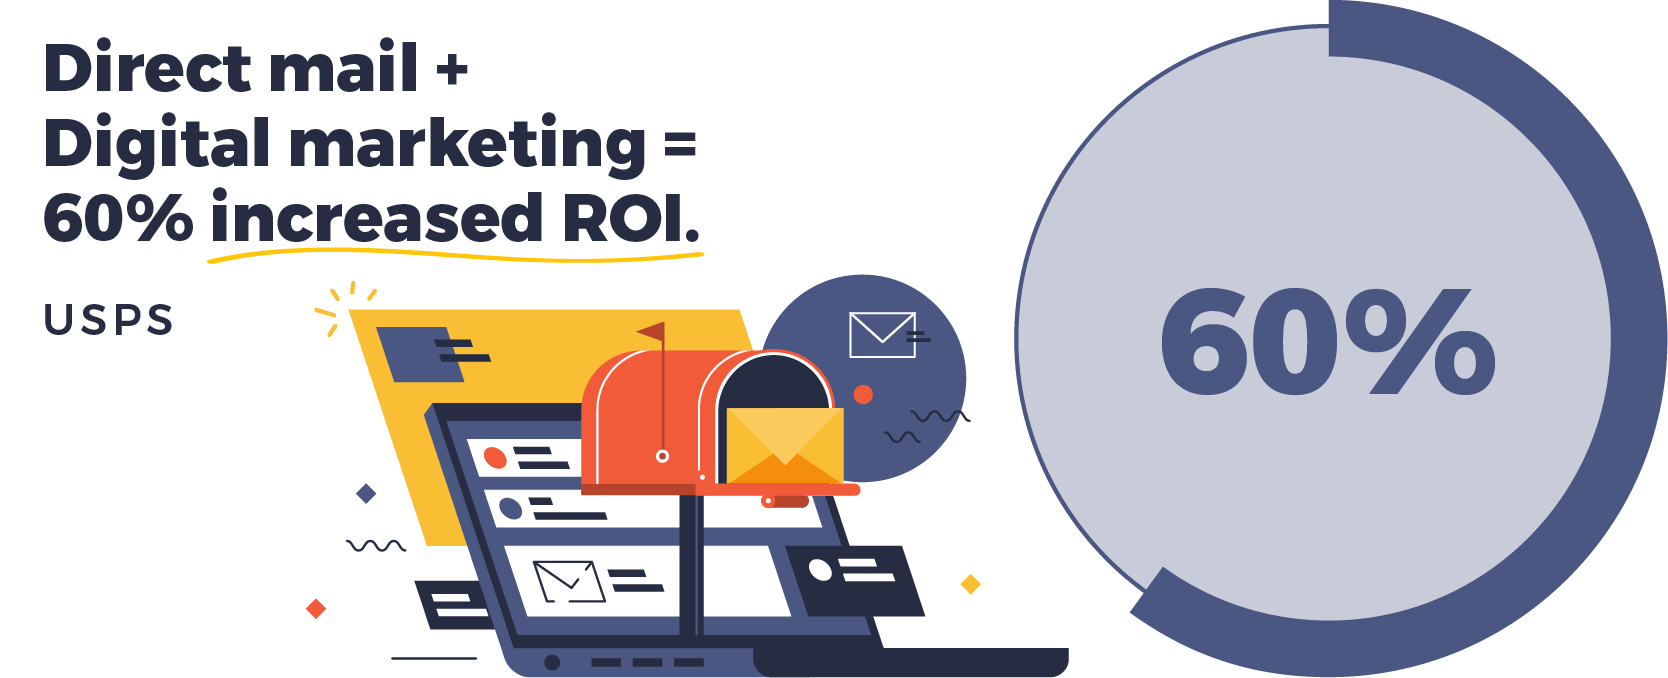 direct mail is most successful when combined with digital marketing